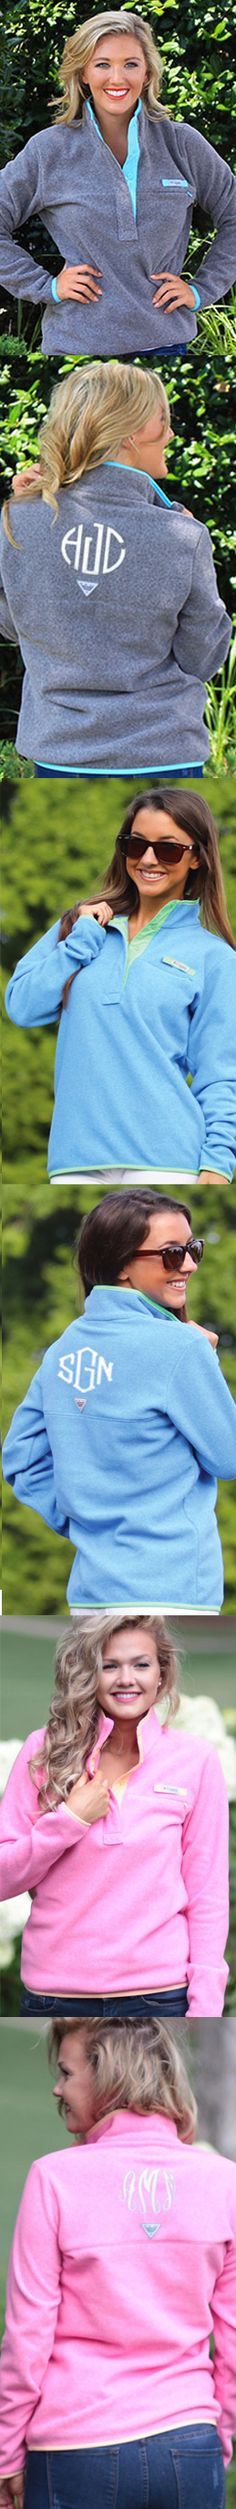 What I will be wearing to class this fall- Monogrammed Columbia Harborside Fleece Pullover from Marleylilly.com -Adorable! #PreppyStyle